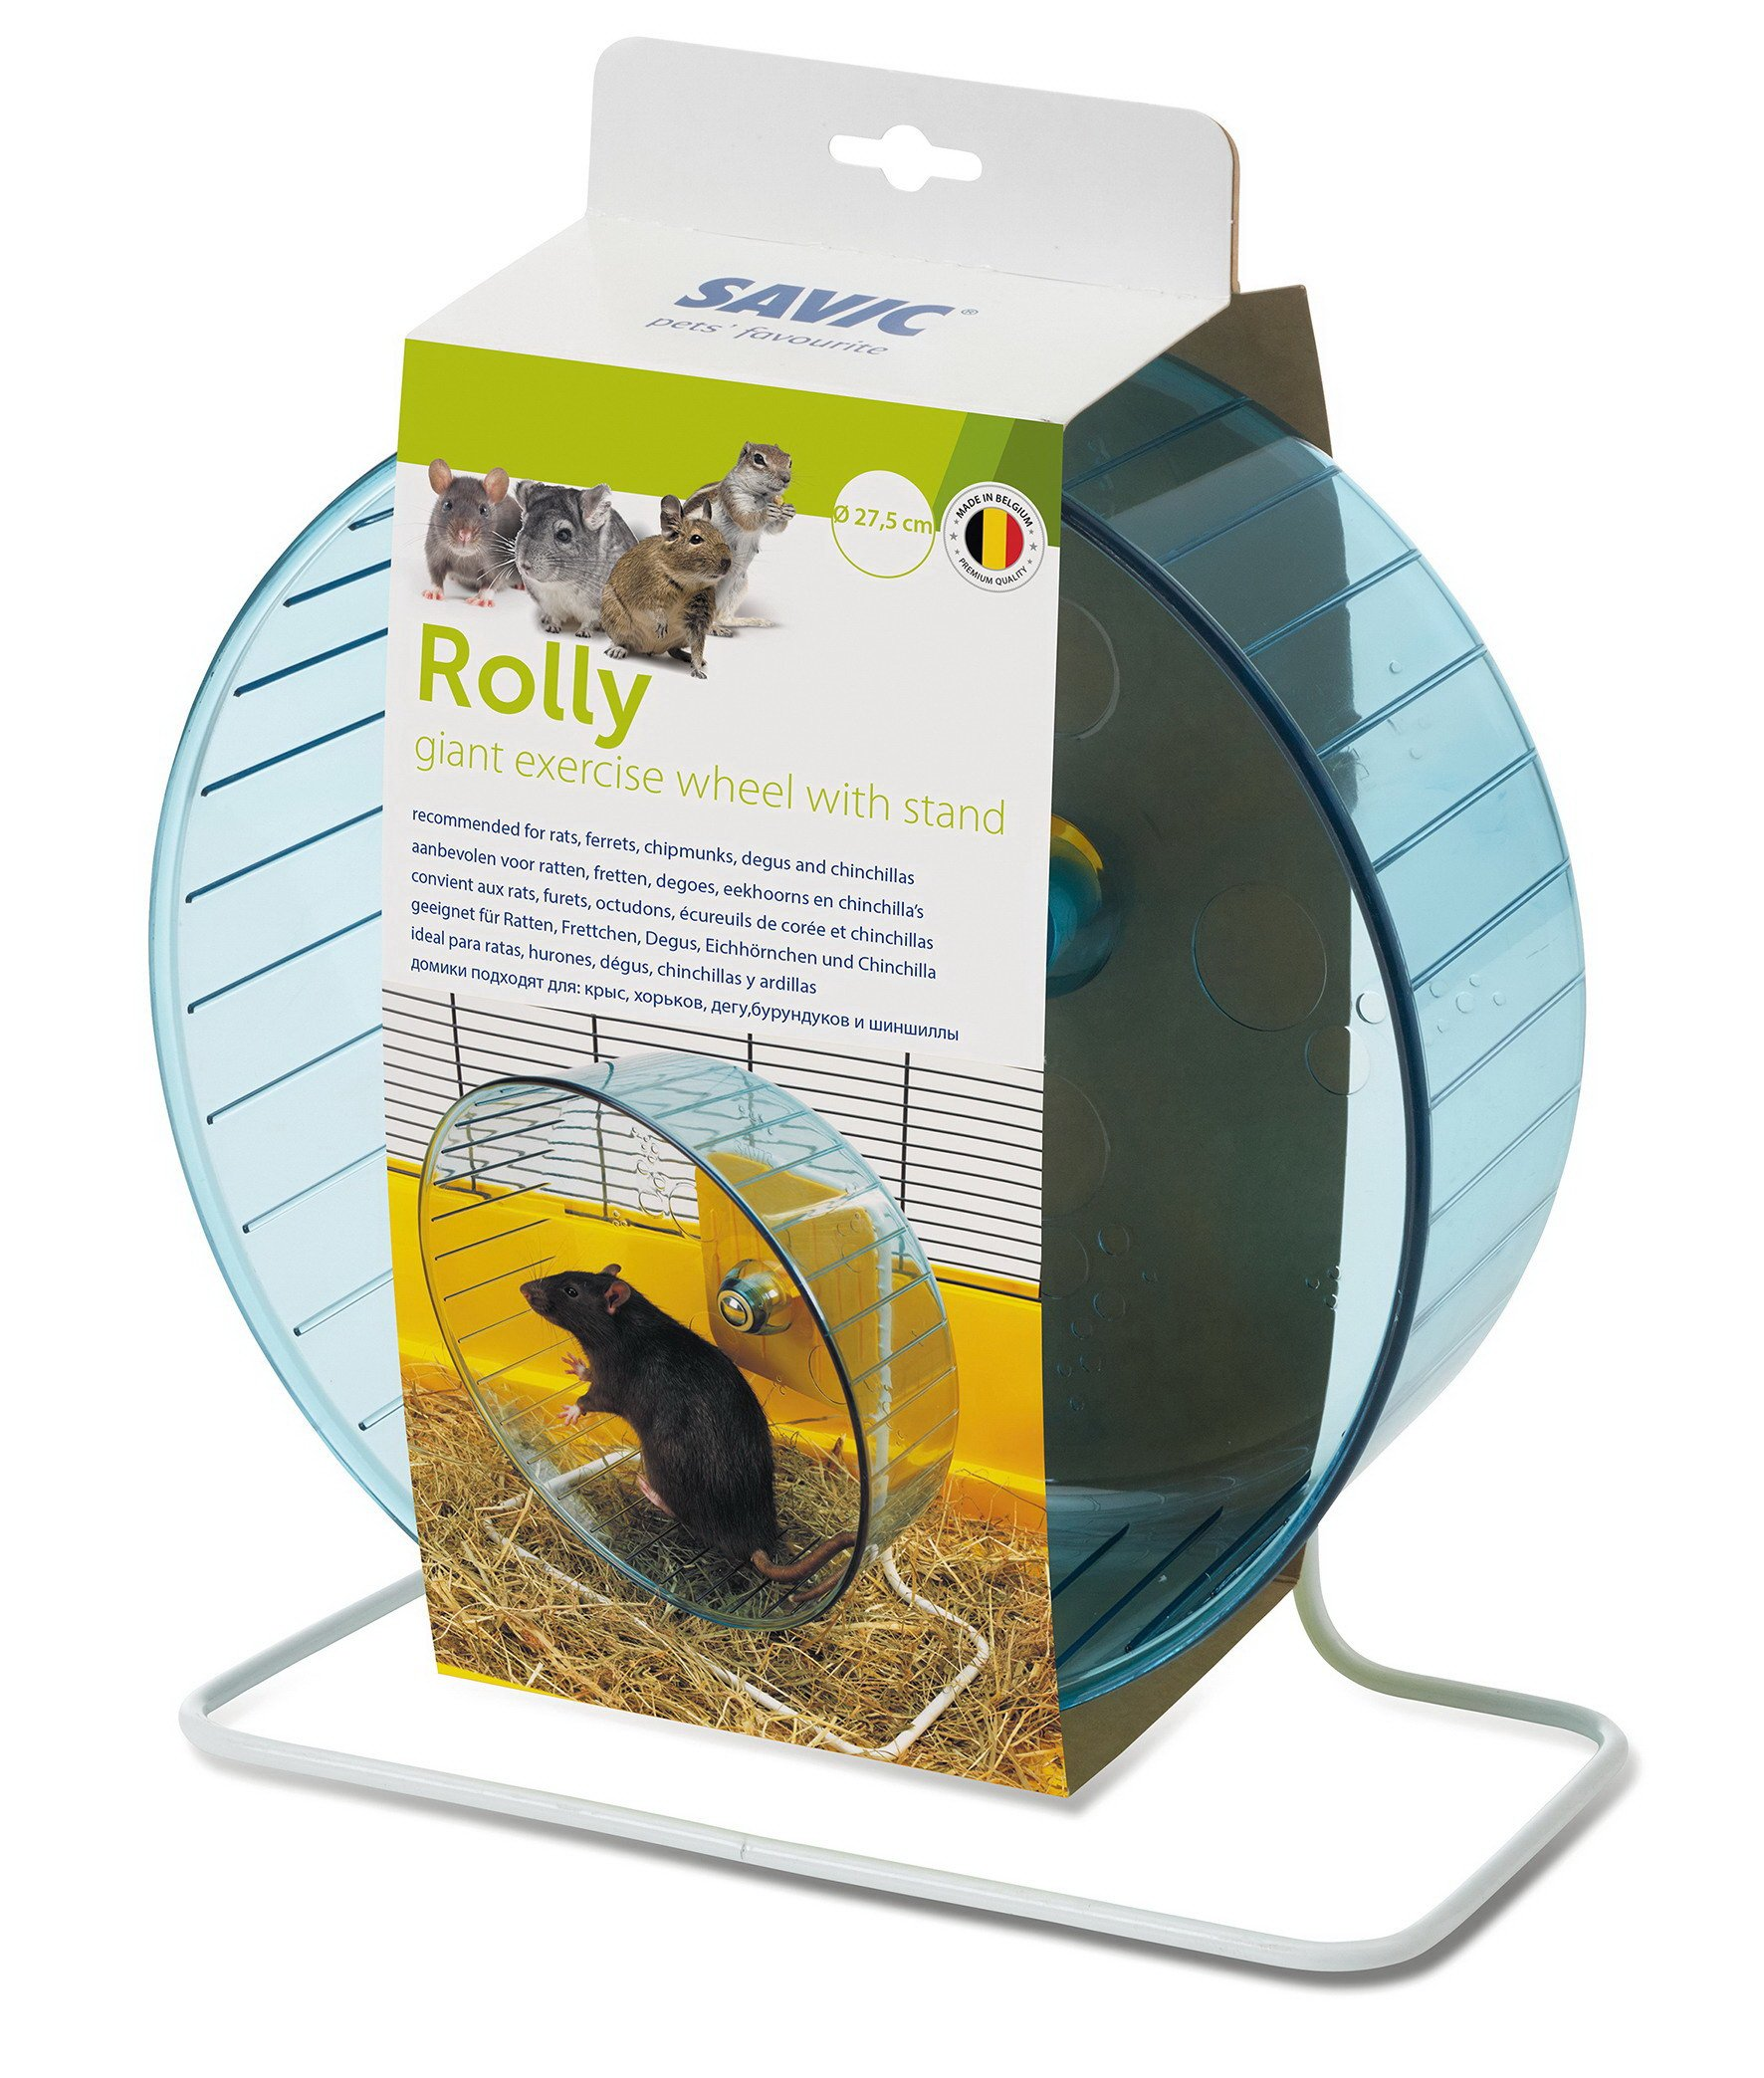 Savic Rolly Giant & Stand Exercise Wheel 27.5cm